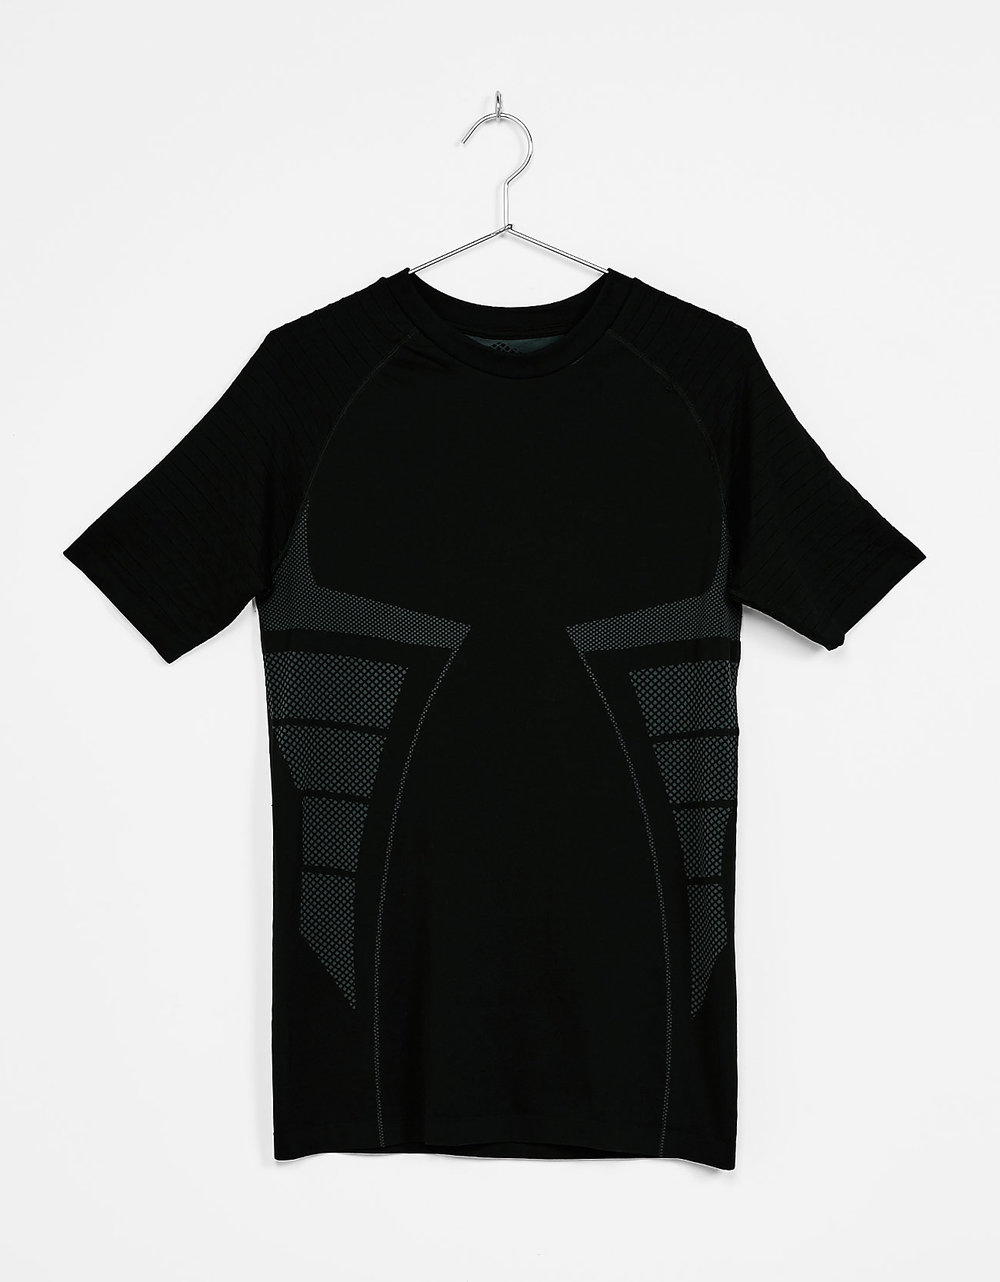 Seamless technical sport T-shirt, £12.99